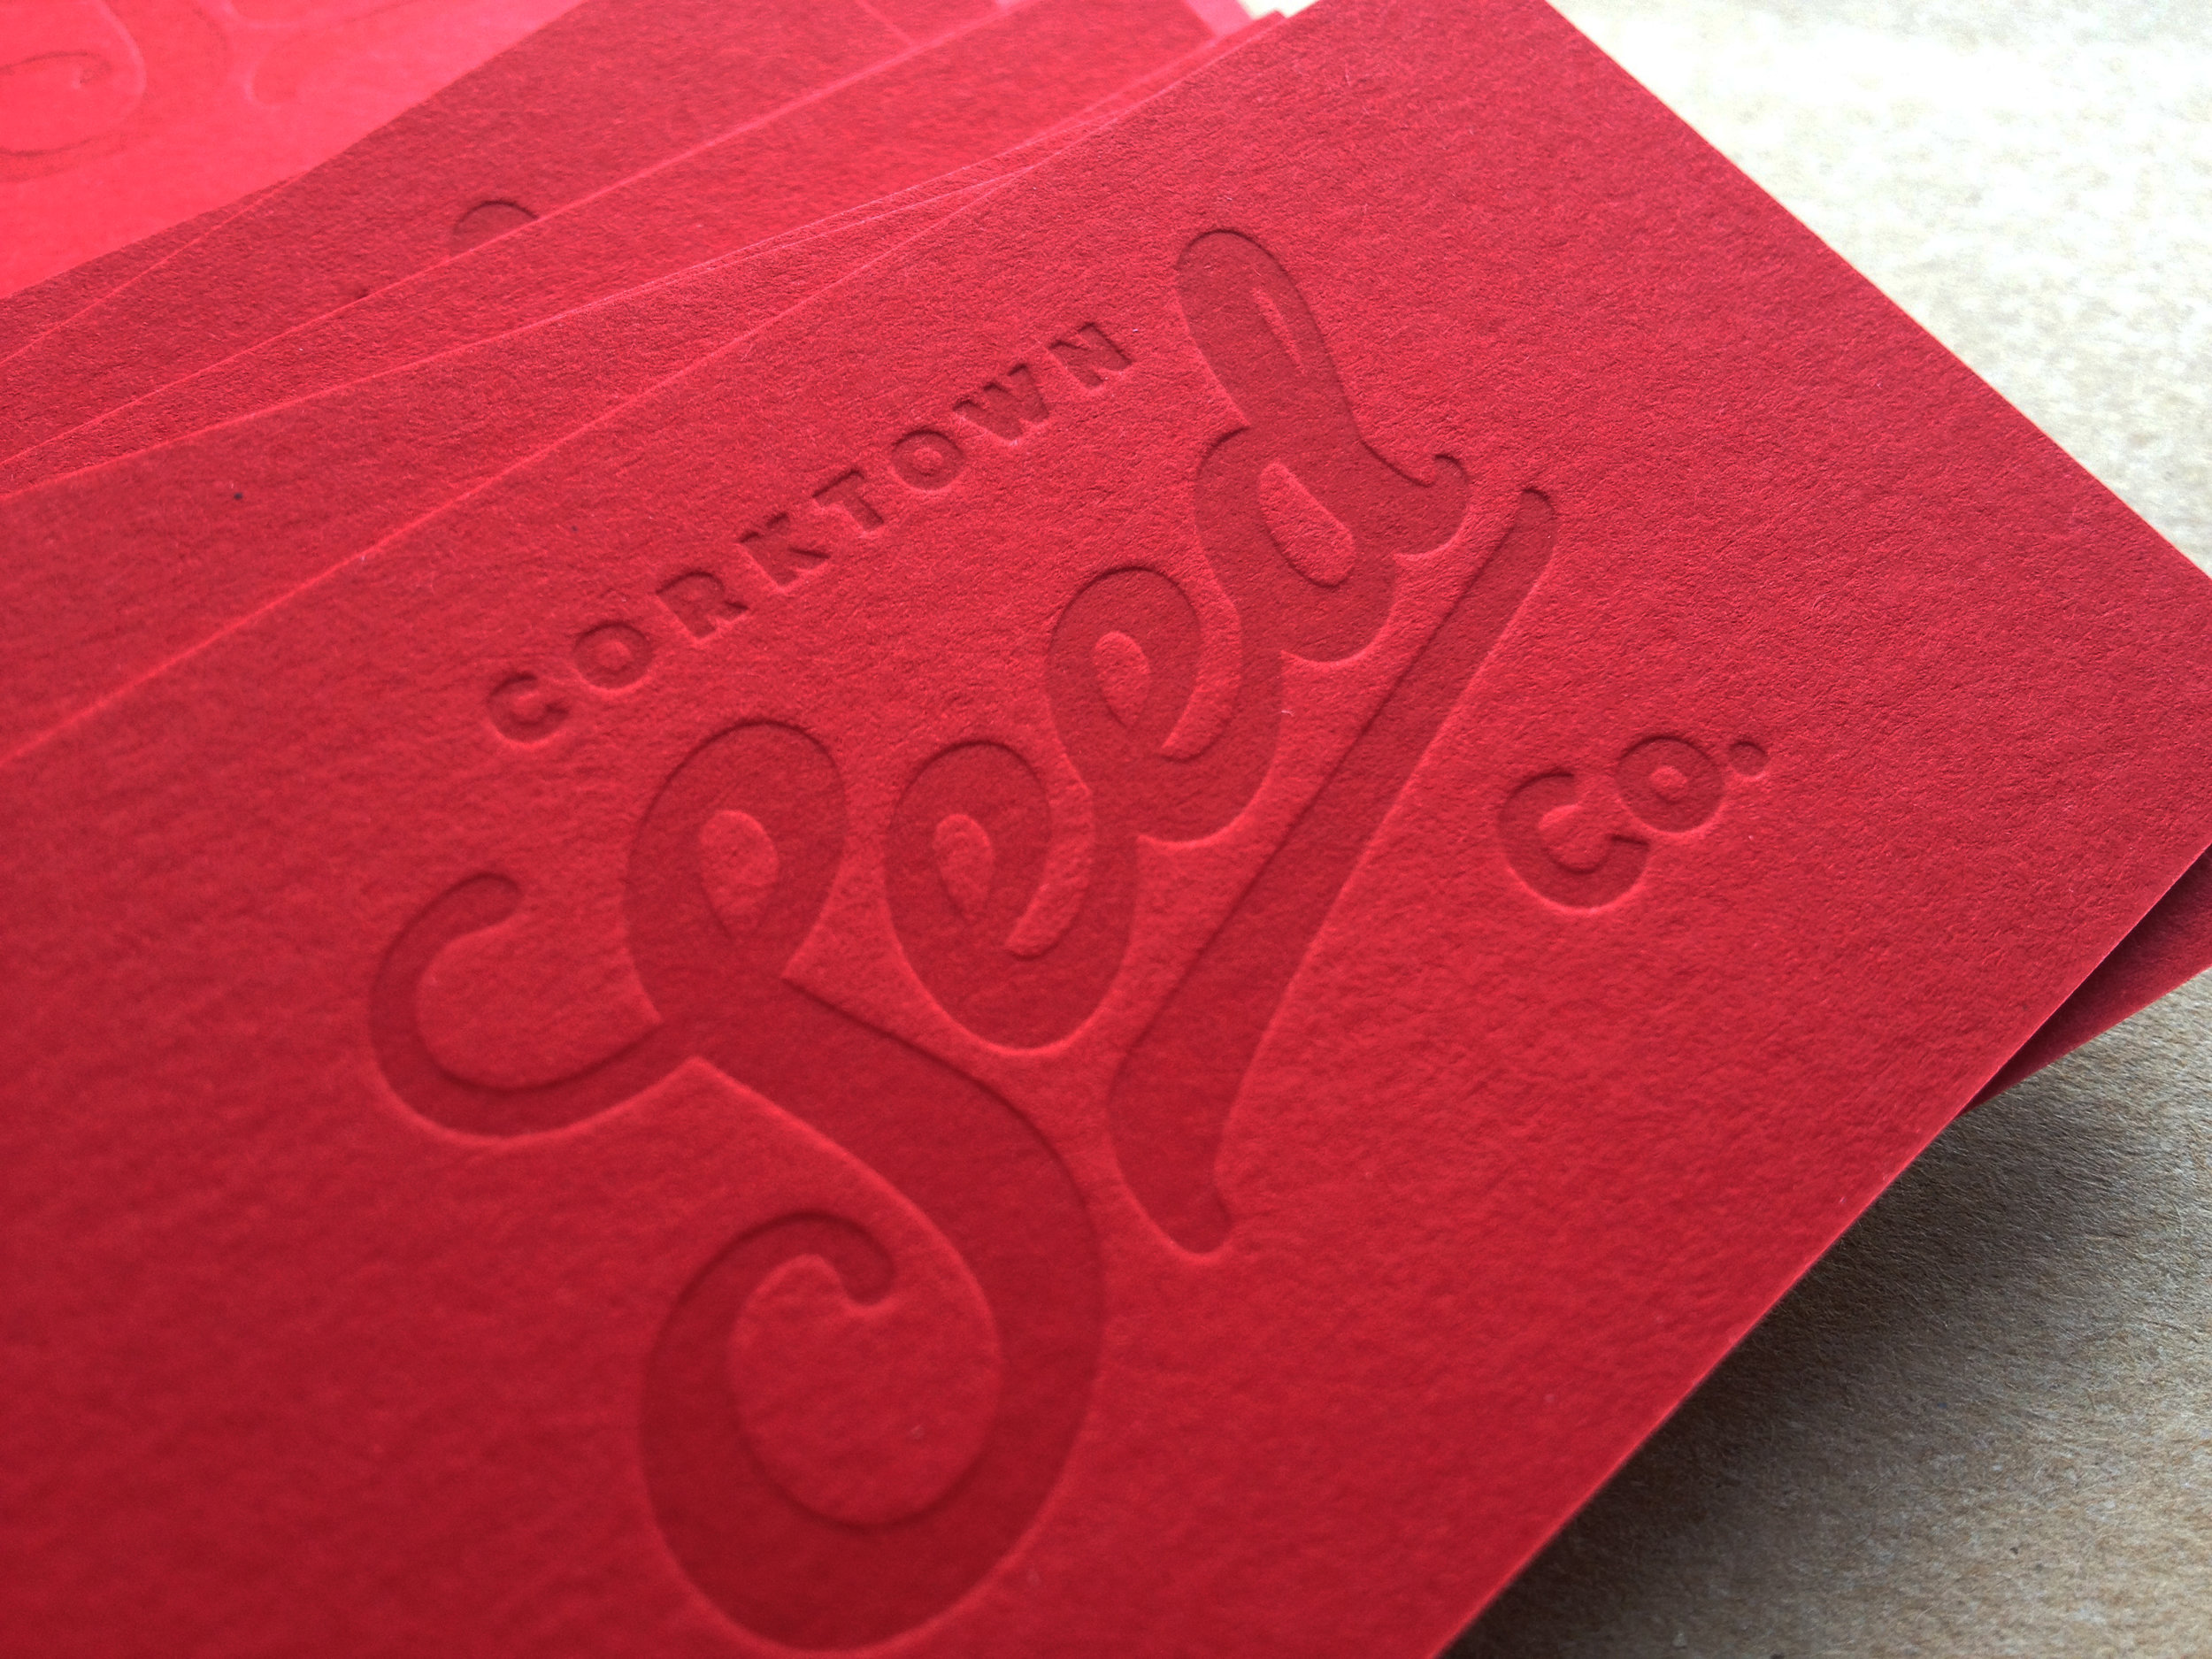 Corktown Seed Co. Business Card